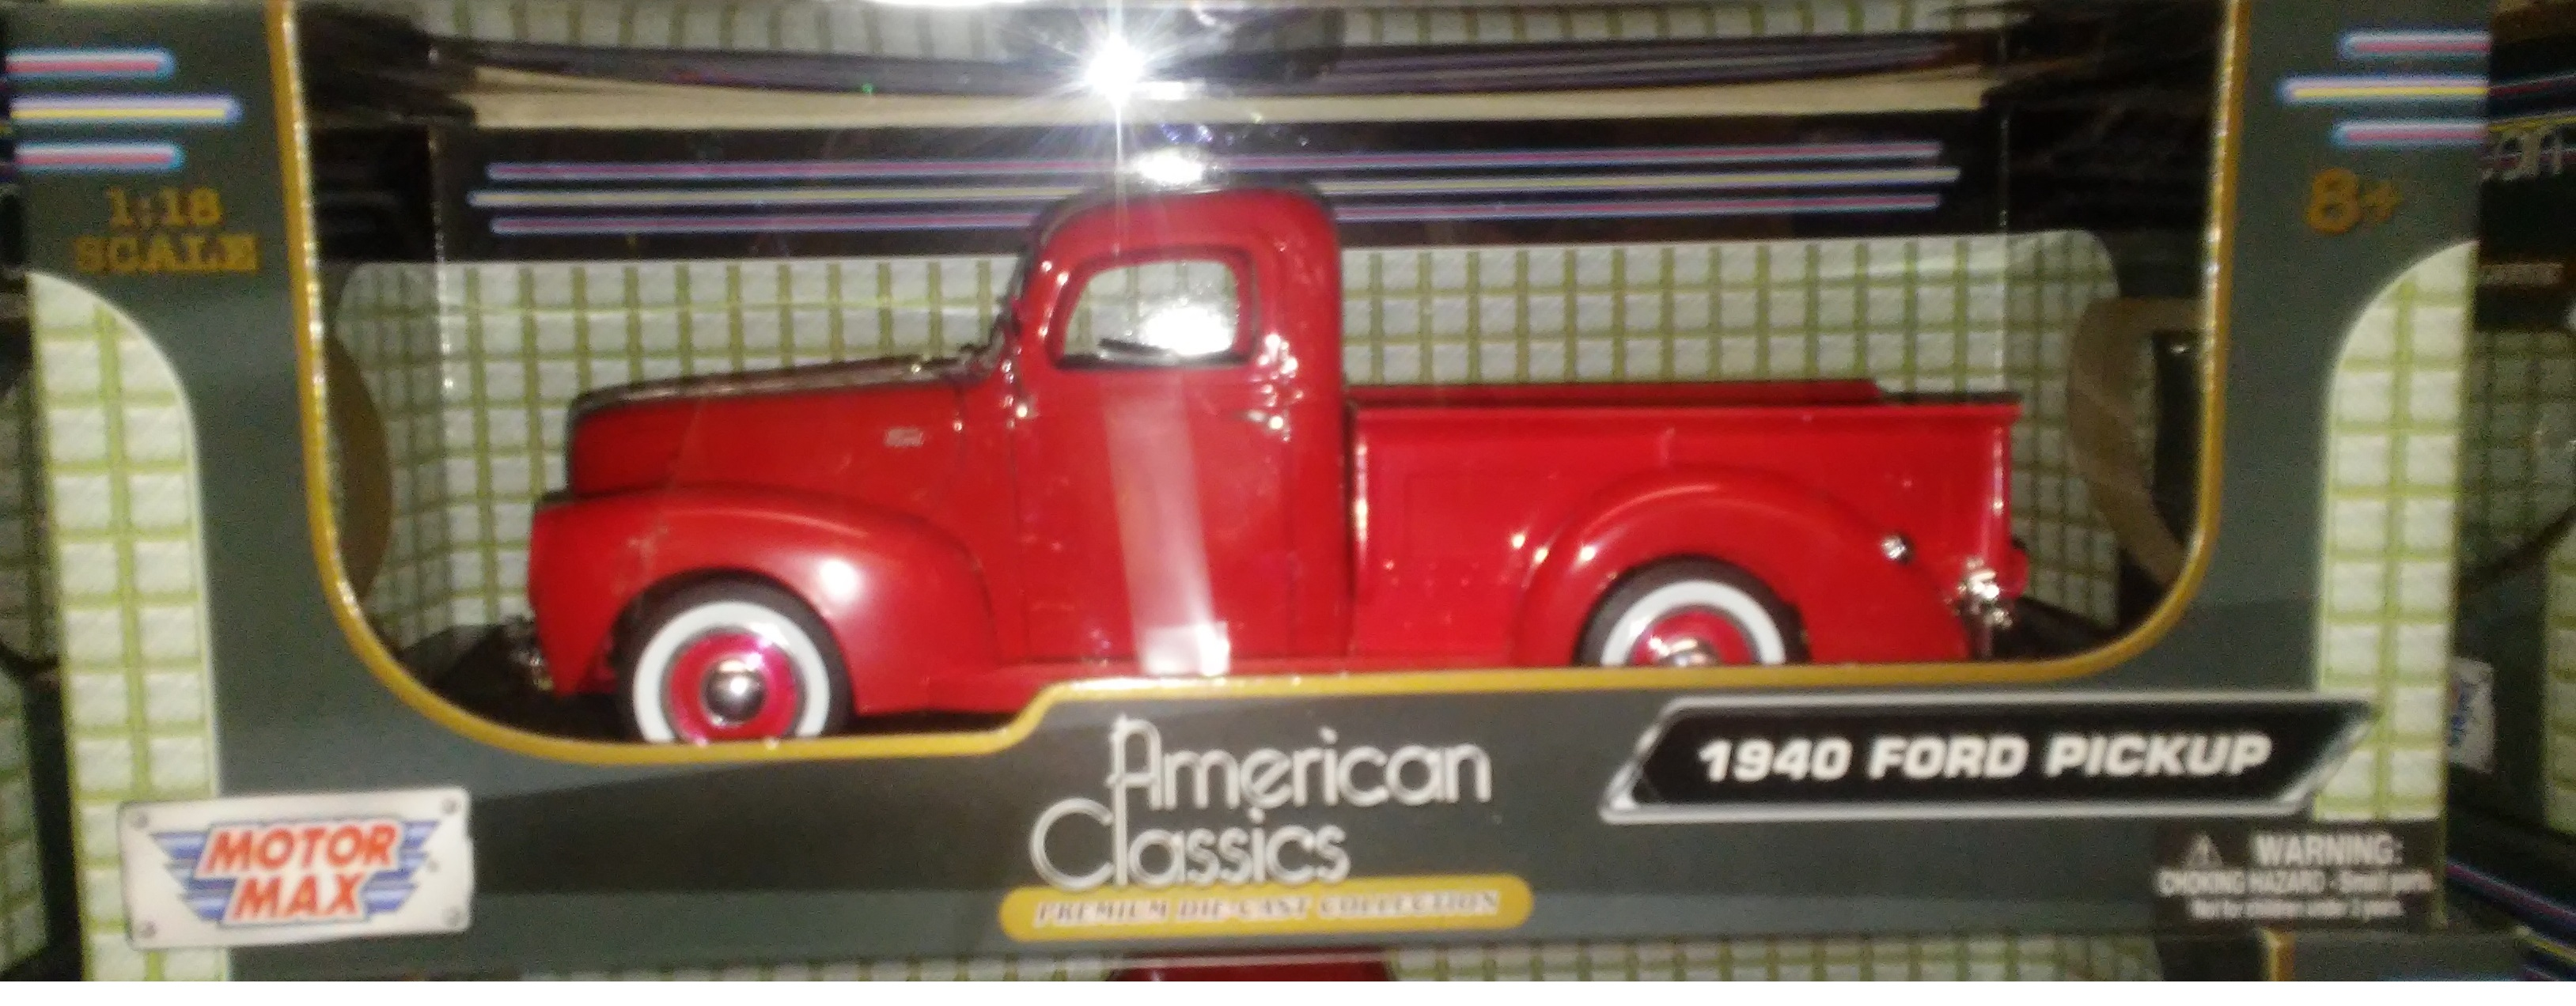 World Famous Classic Toys Diecast Ford Pickup Trucks F 150 1955 F100 Red 1940 Truck